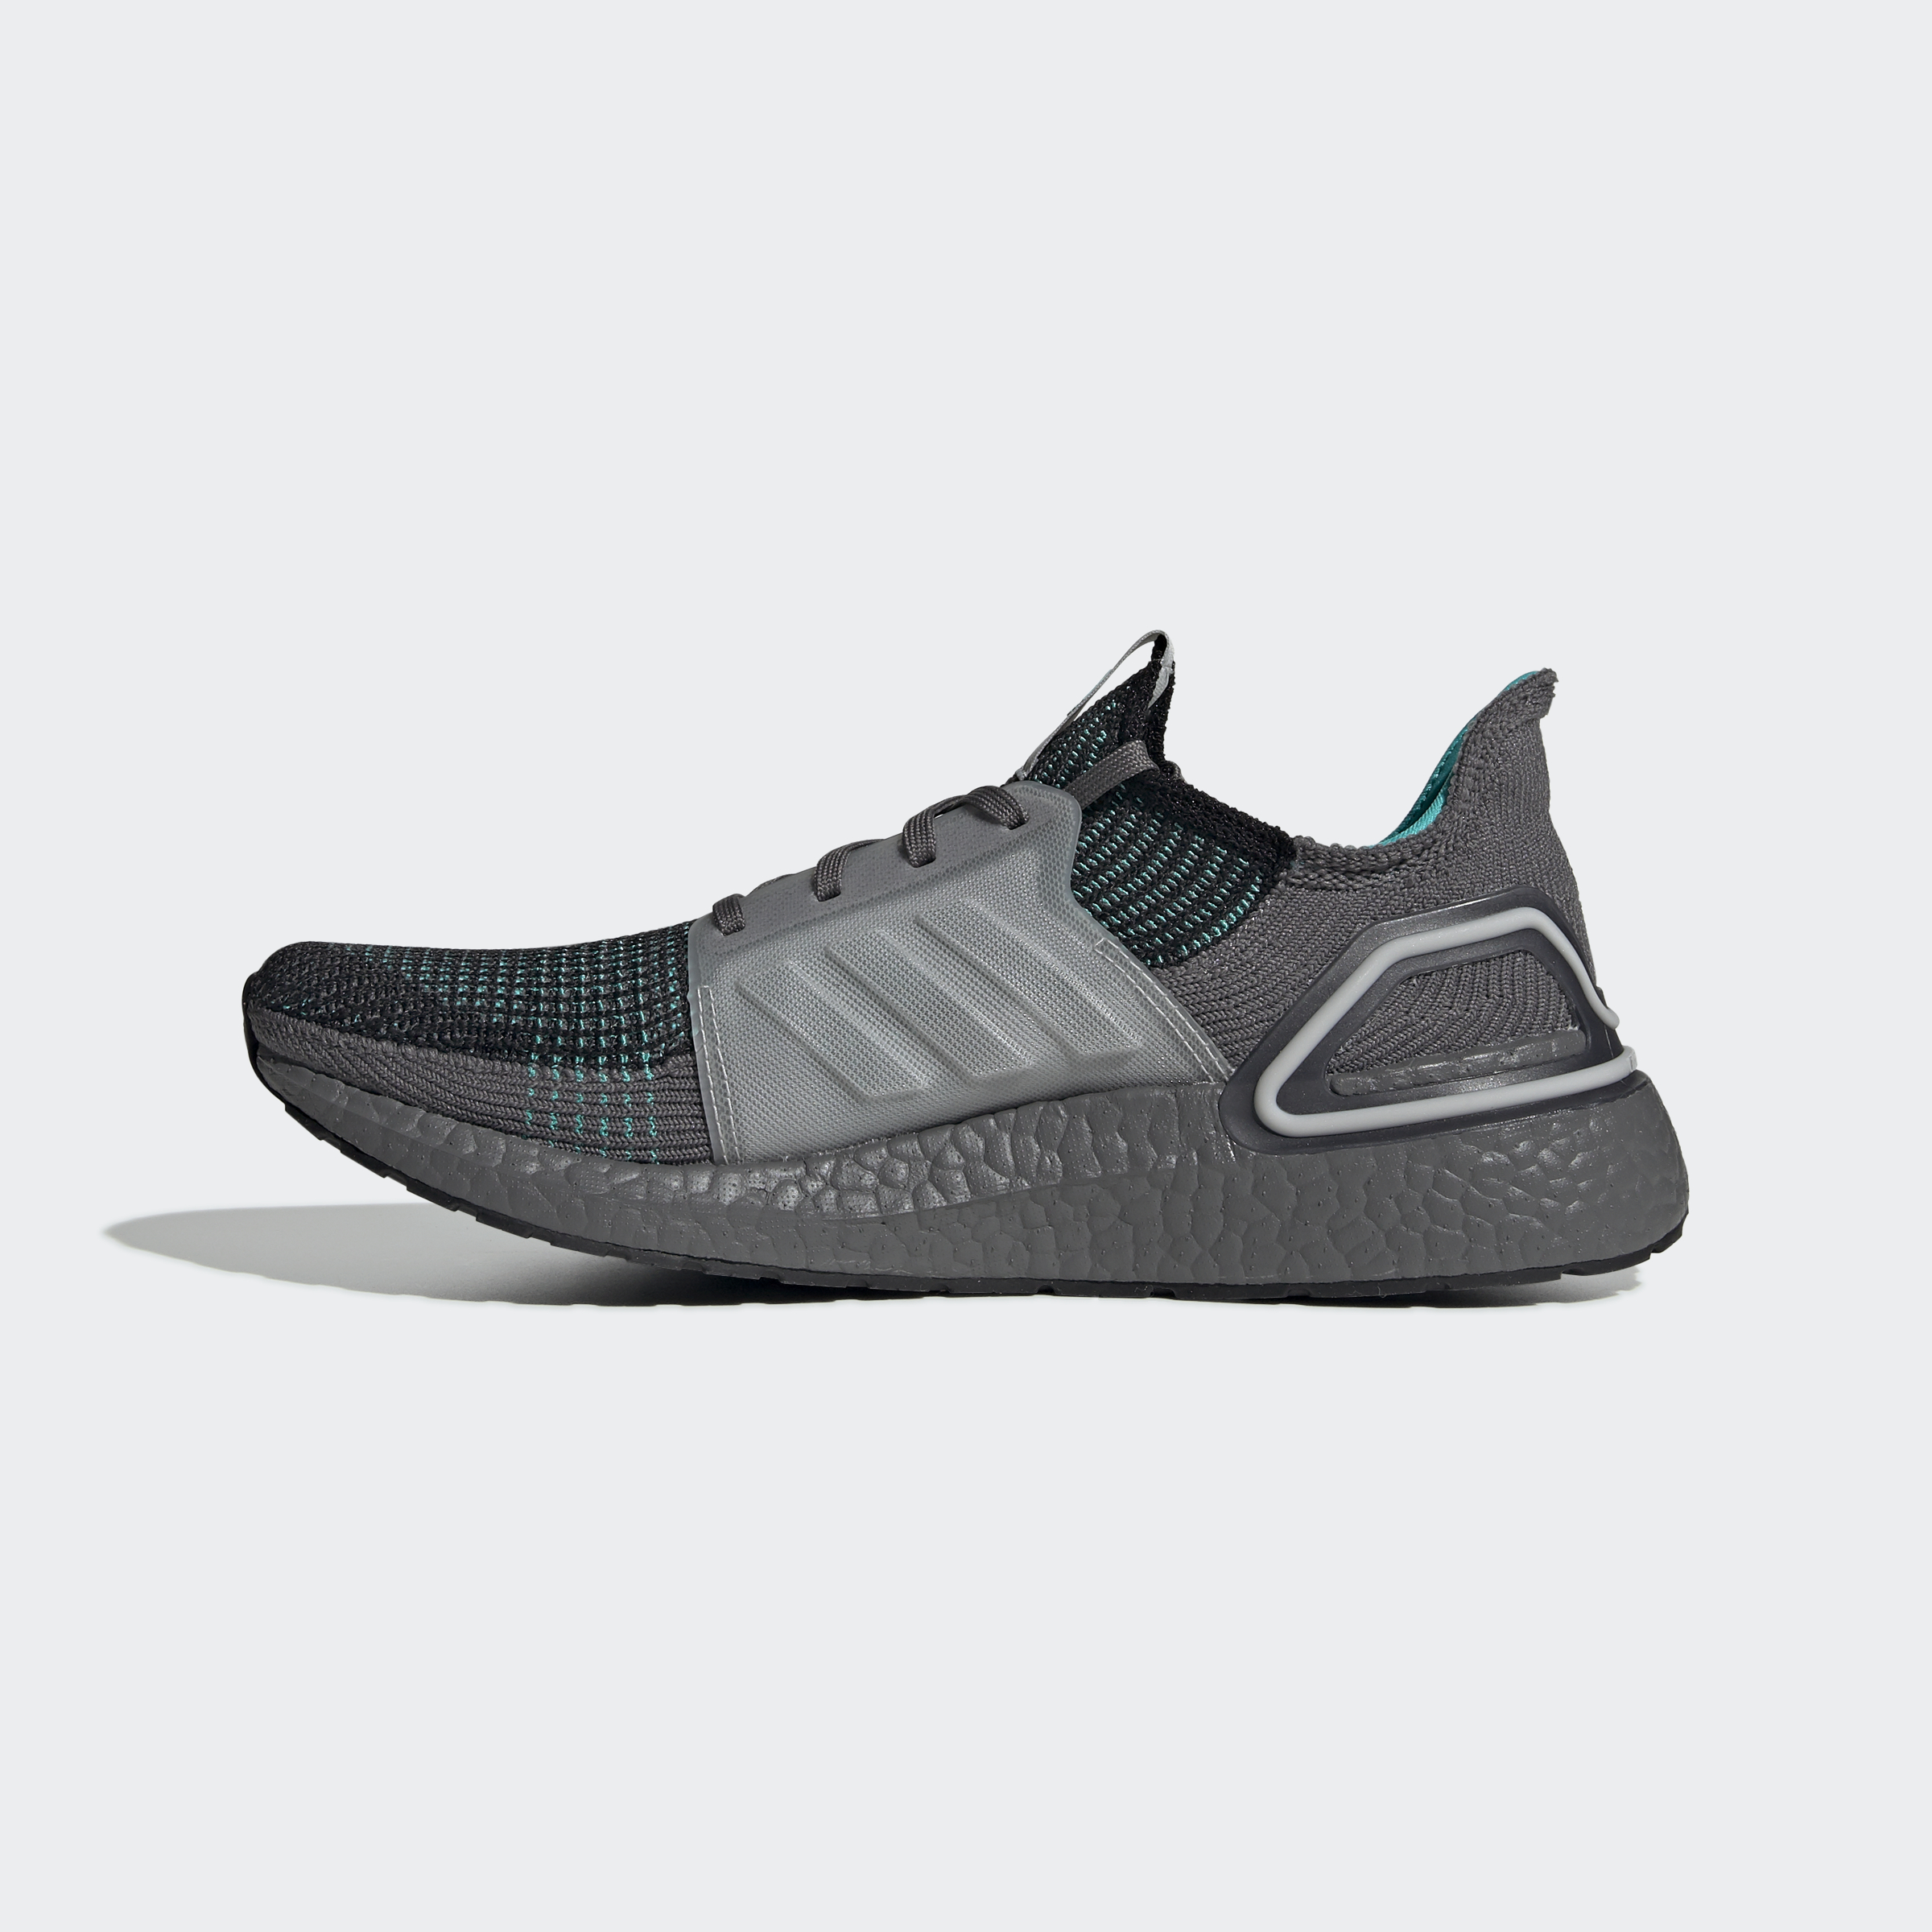 adidas-Ultraboost-19-Shoes-Athletic-amp-Sneakers thumbnail 15